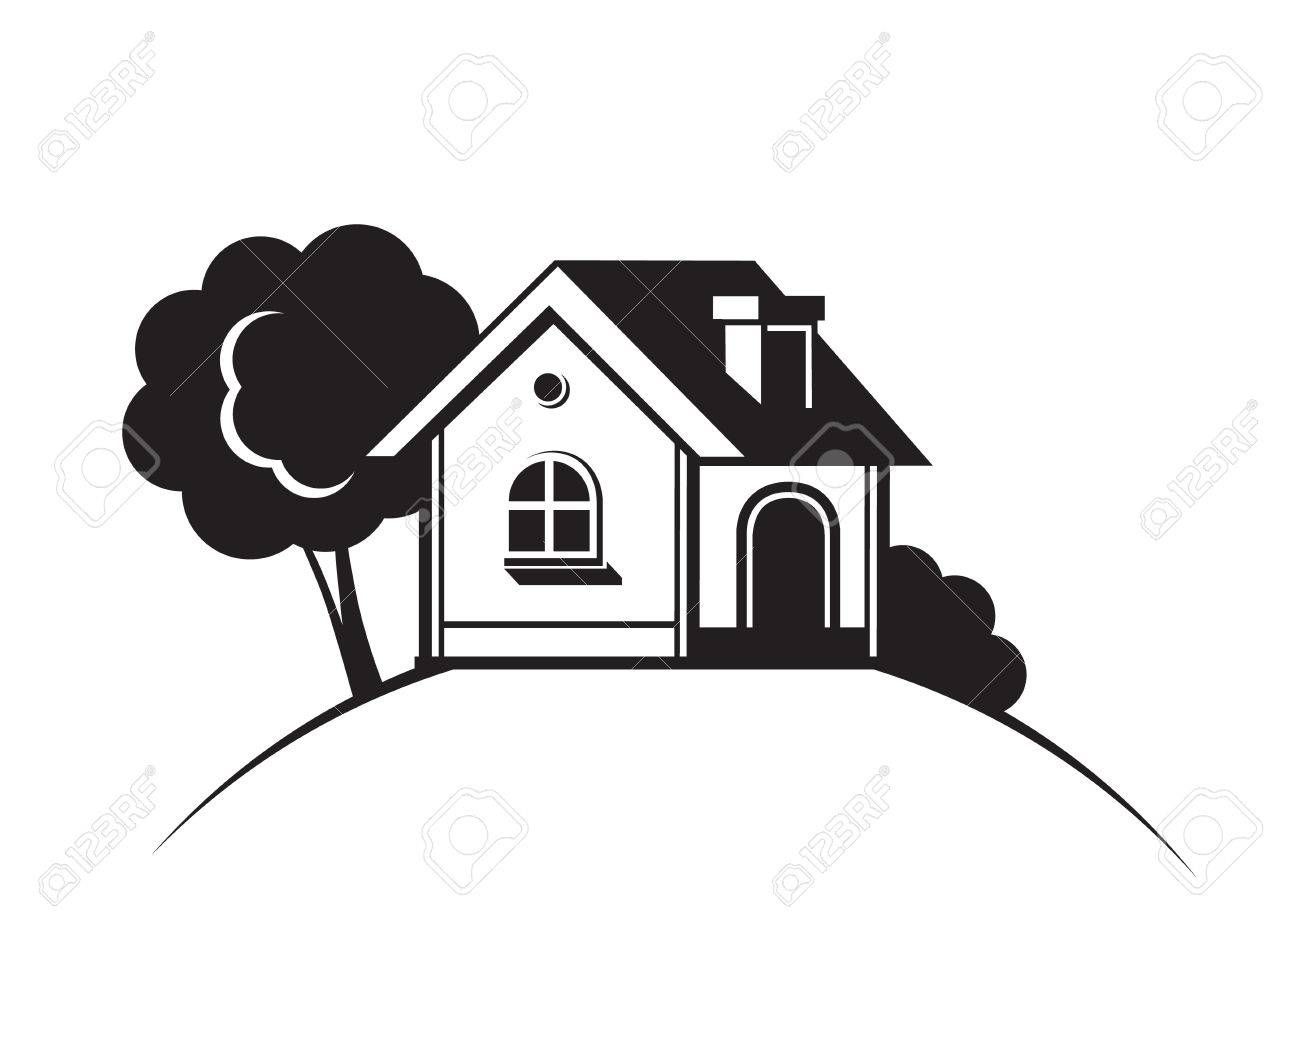 6416e5ca8ad3 Black house front icon, on white background. Vector illustration Stock  Vector - 75552043